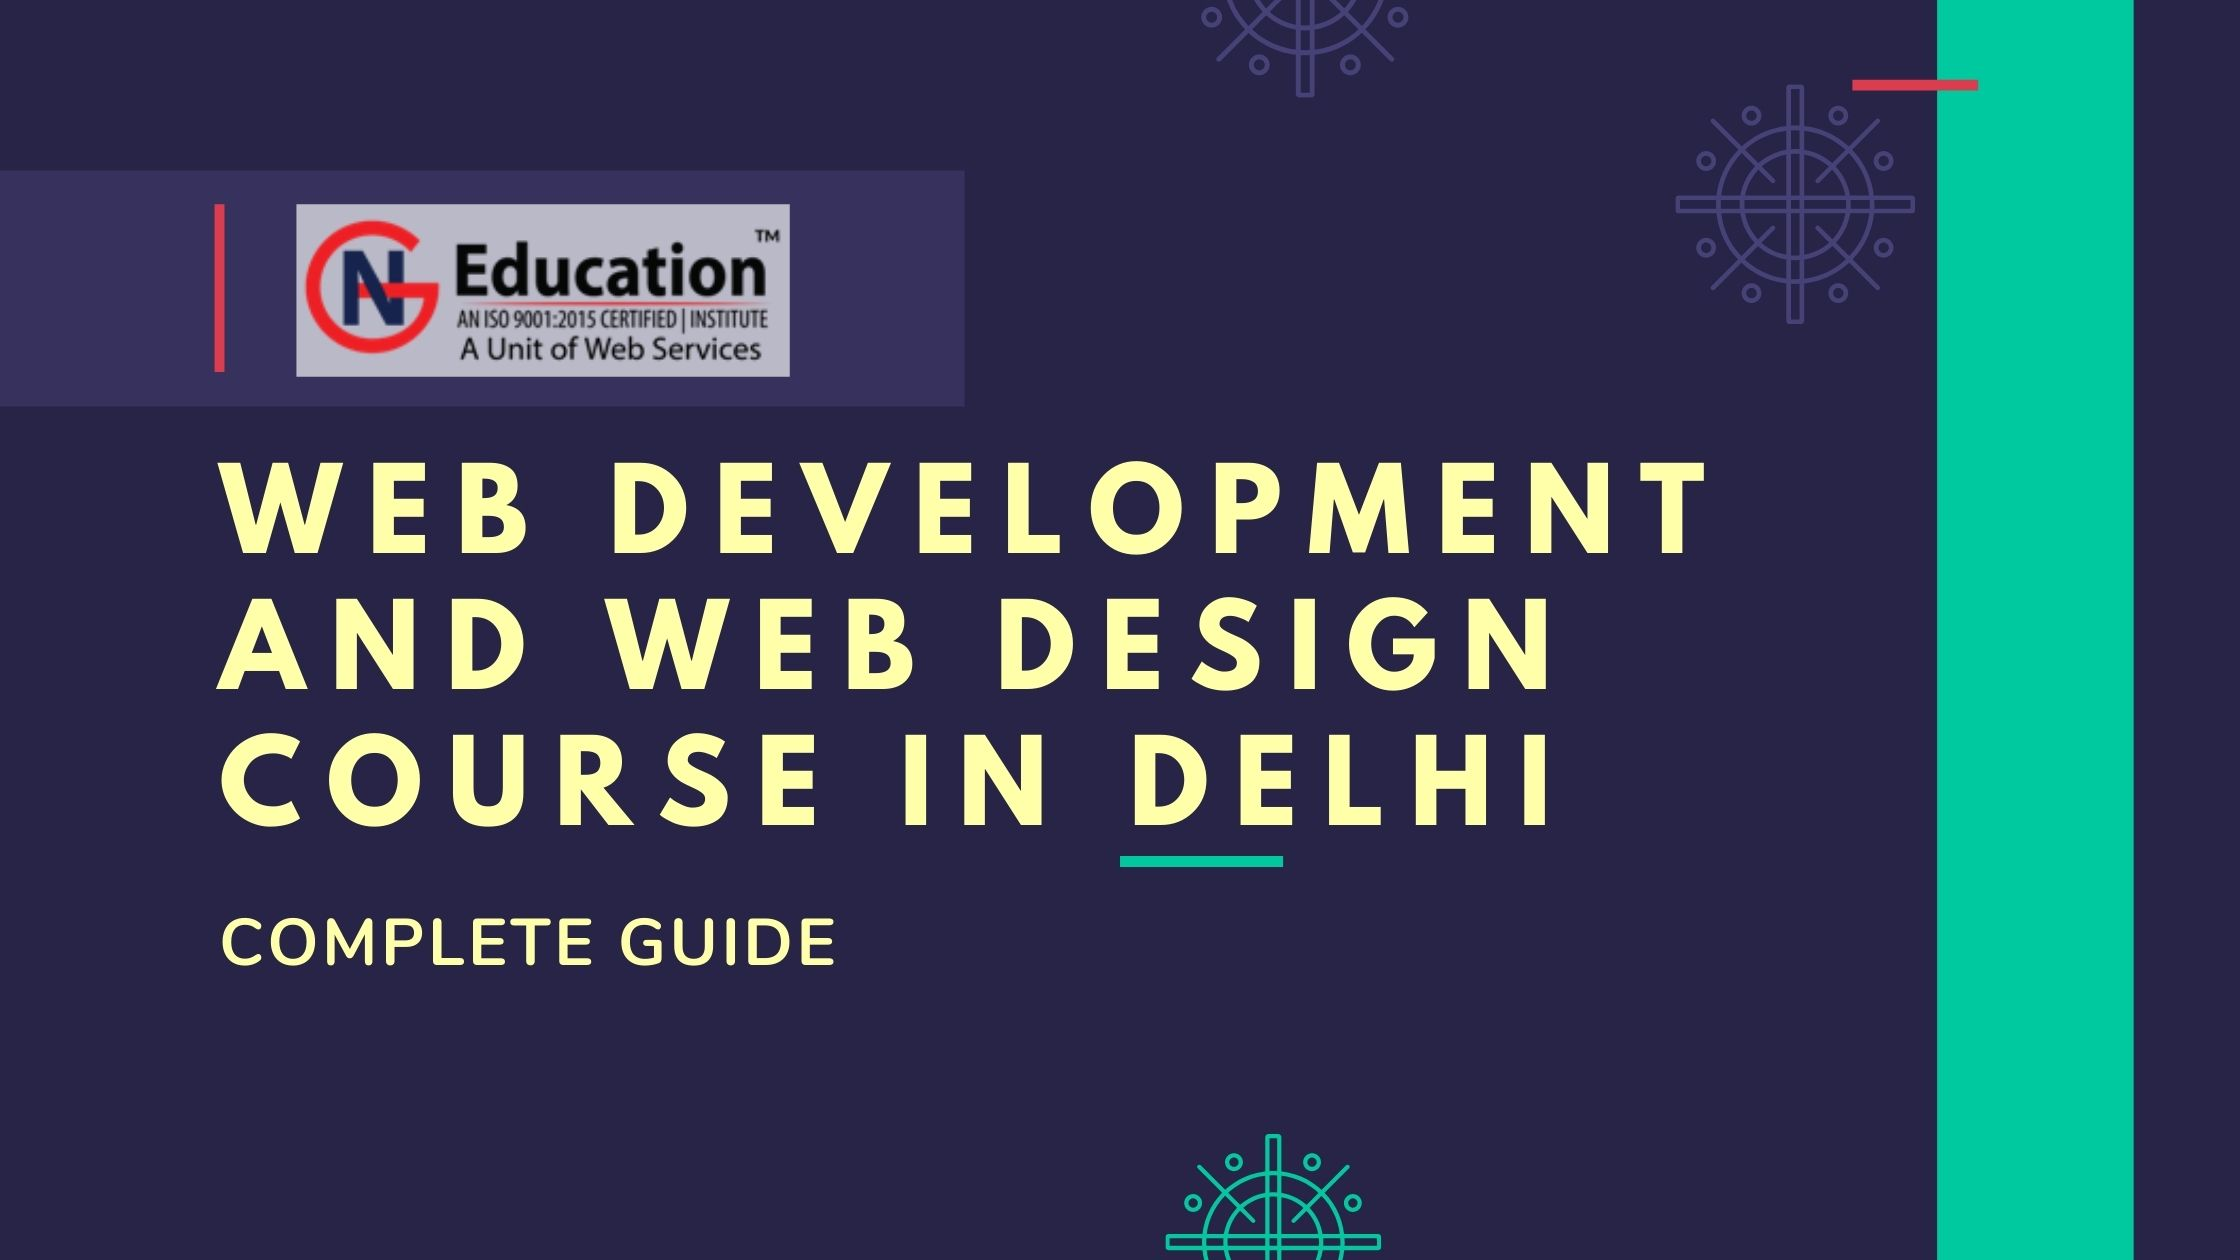 Best Web Development and Web Design Course in Delhi with the Complete Guide